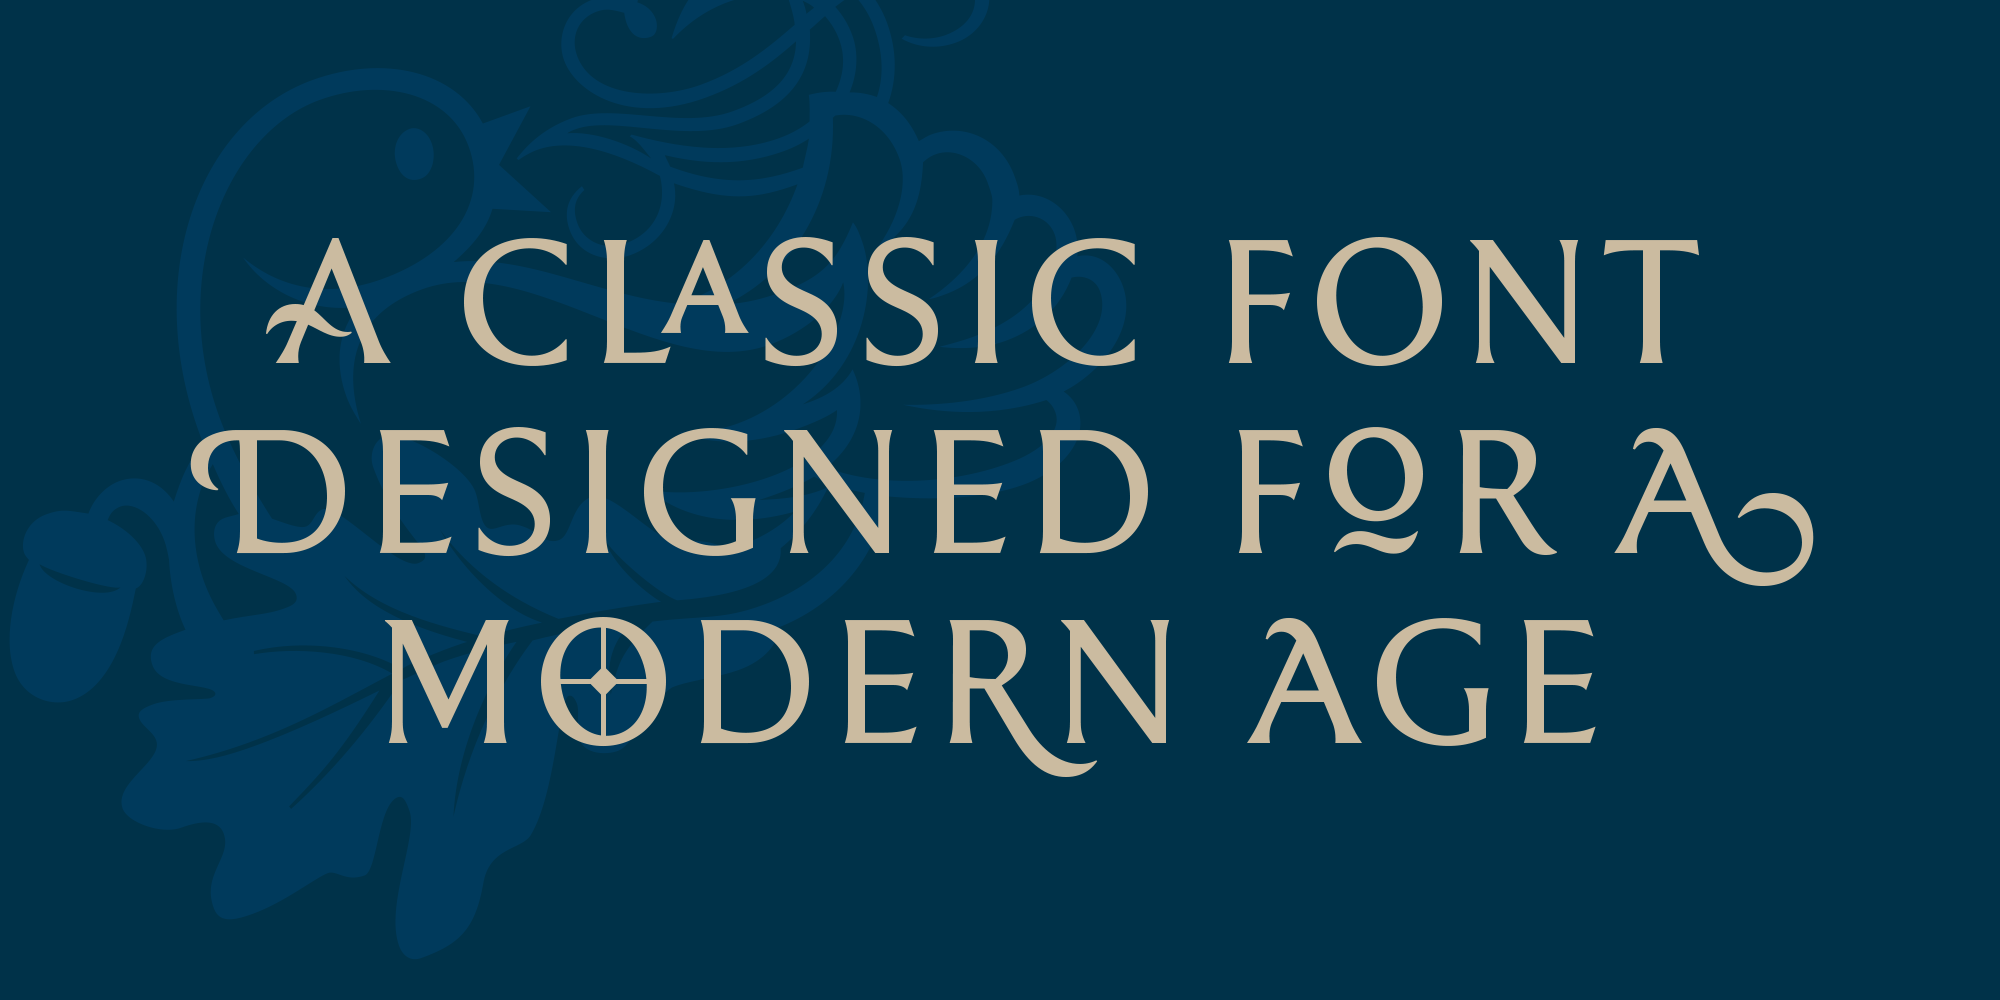 Rahere Roman Display, a classic font for a modern age